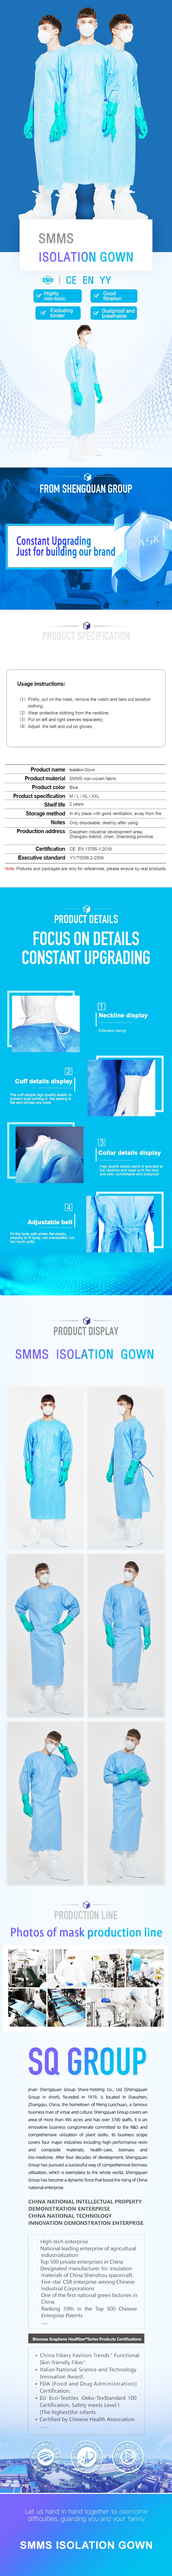 35g SMMS gown Isolation gown